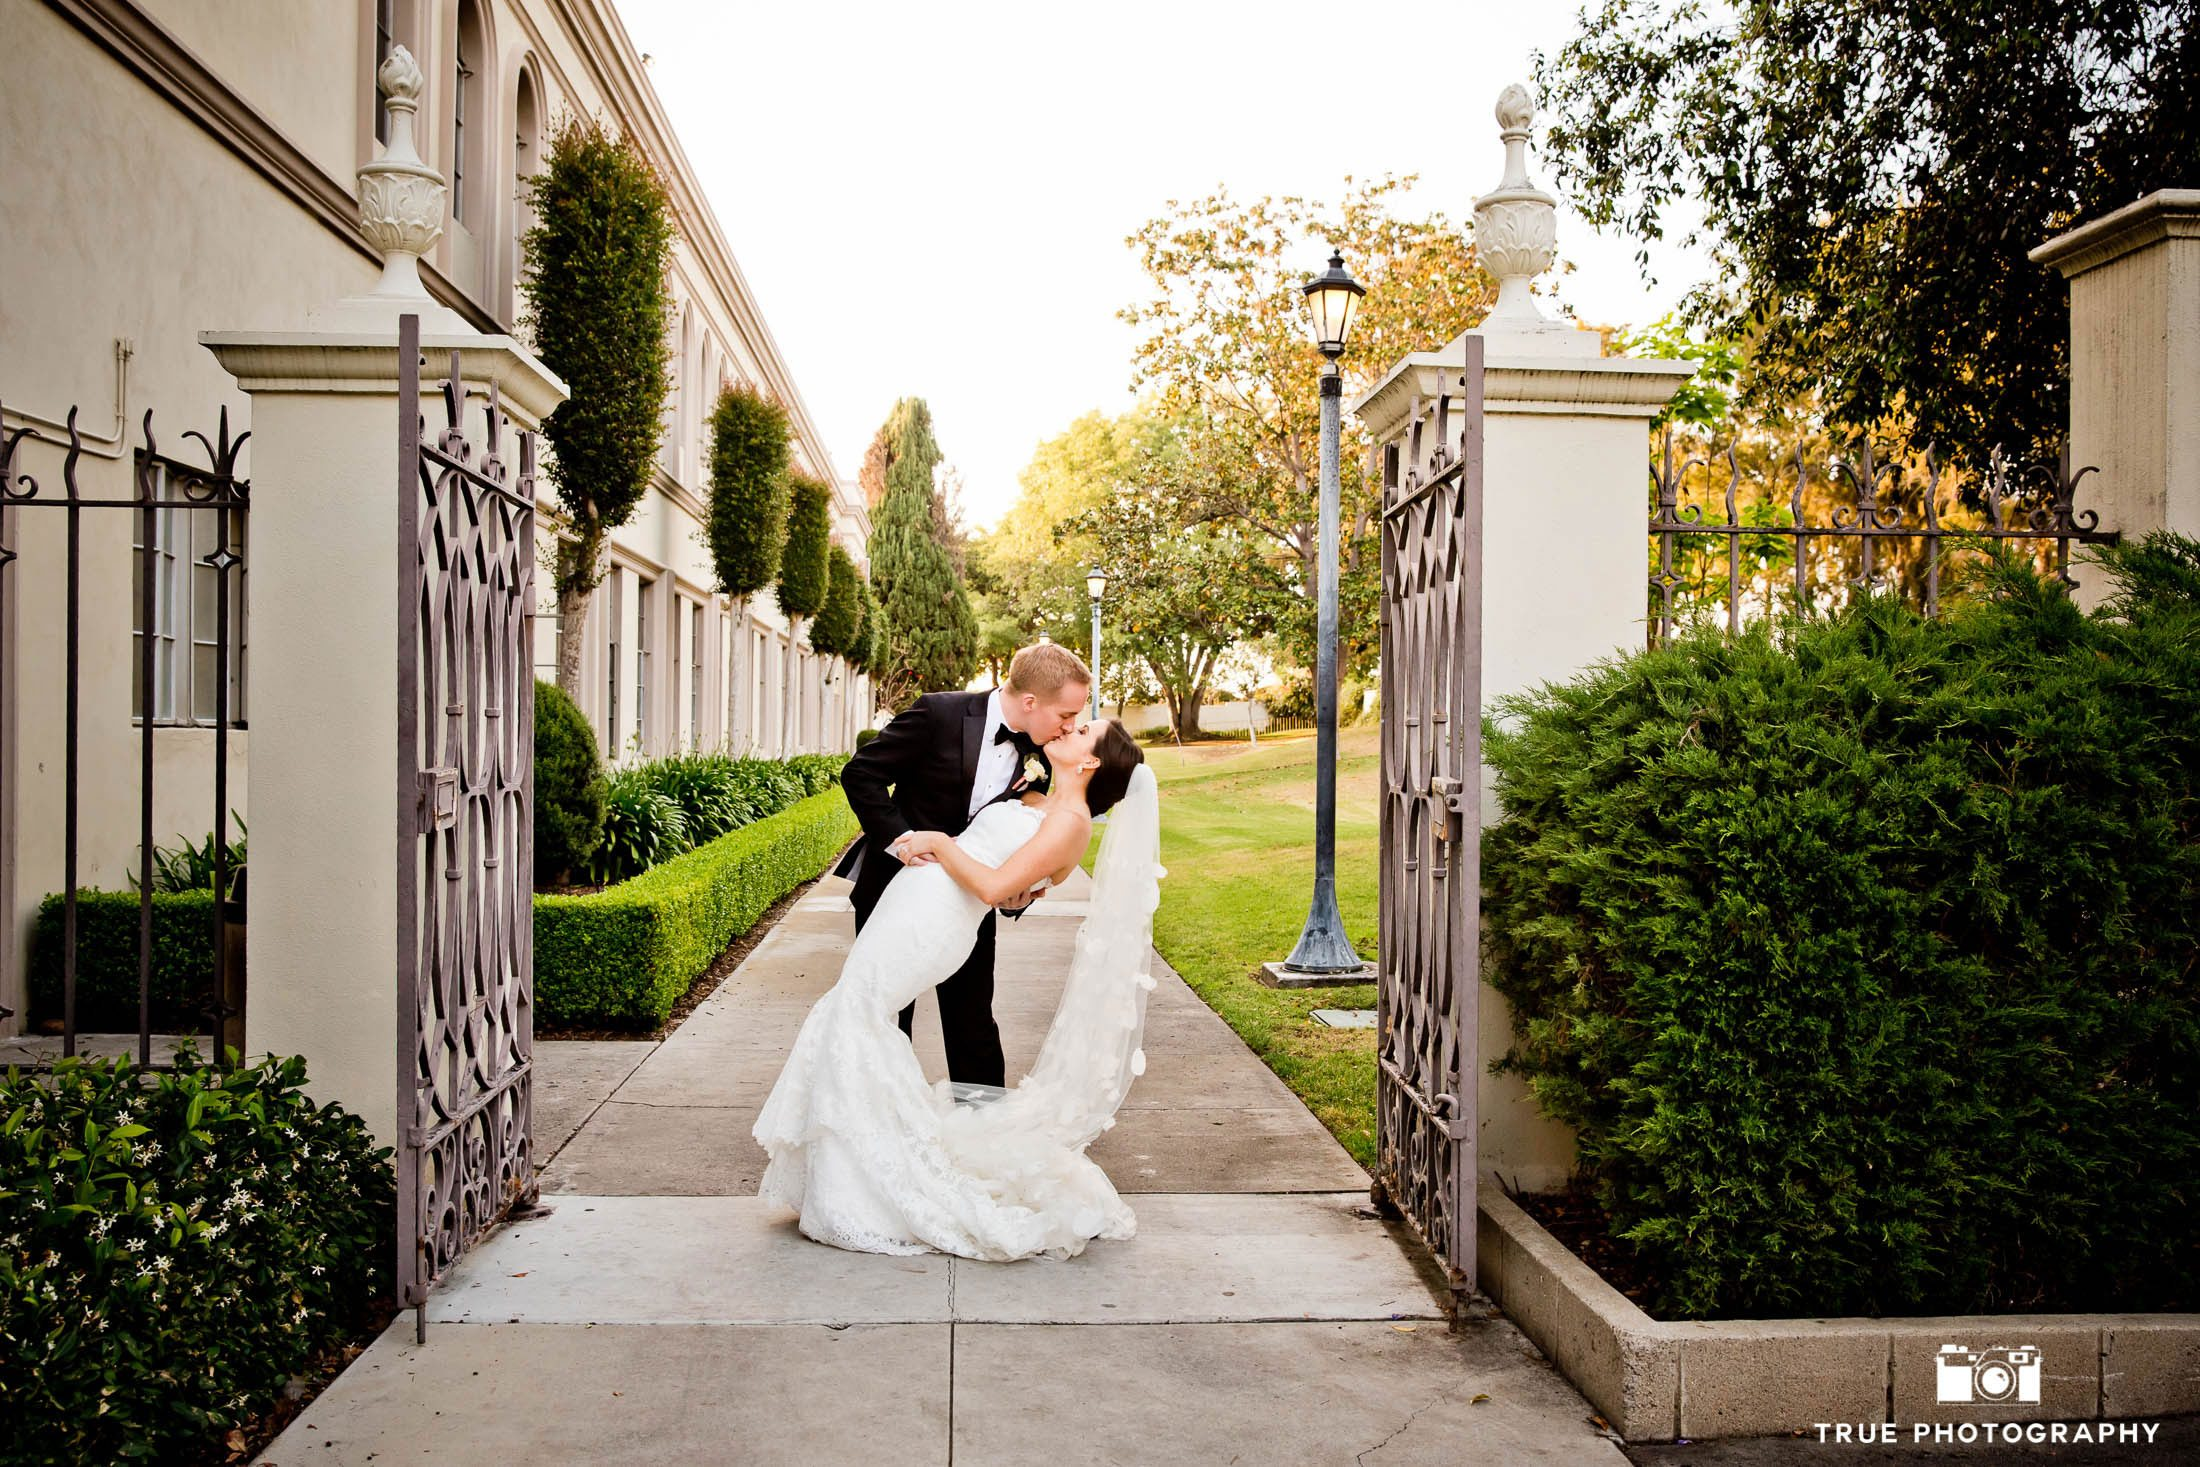 A groom tilts his new bride back for a fashionable kiss near the gates of Founders chapel.